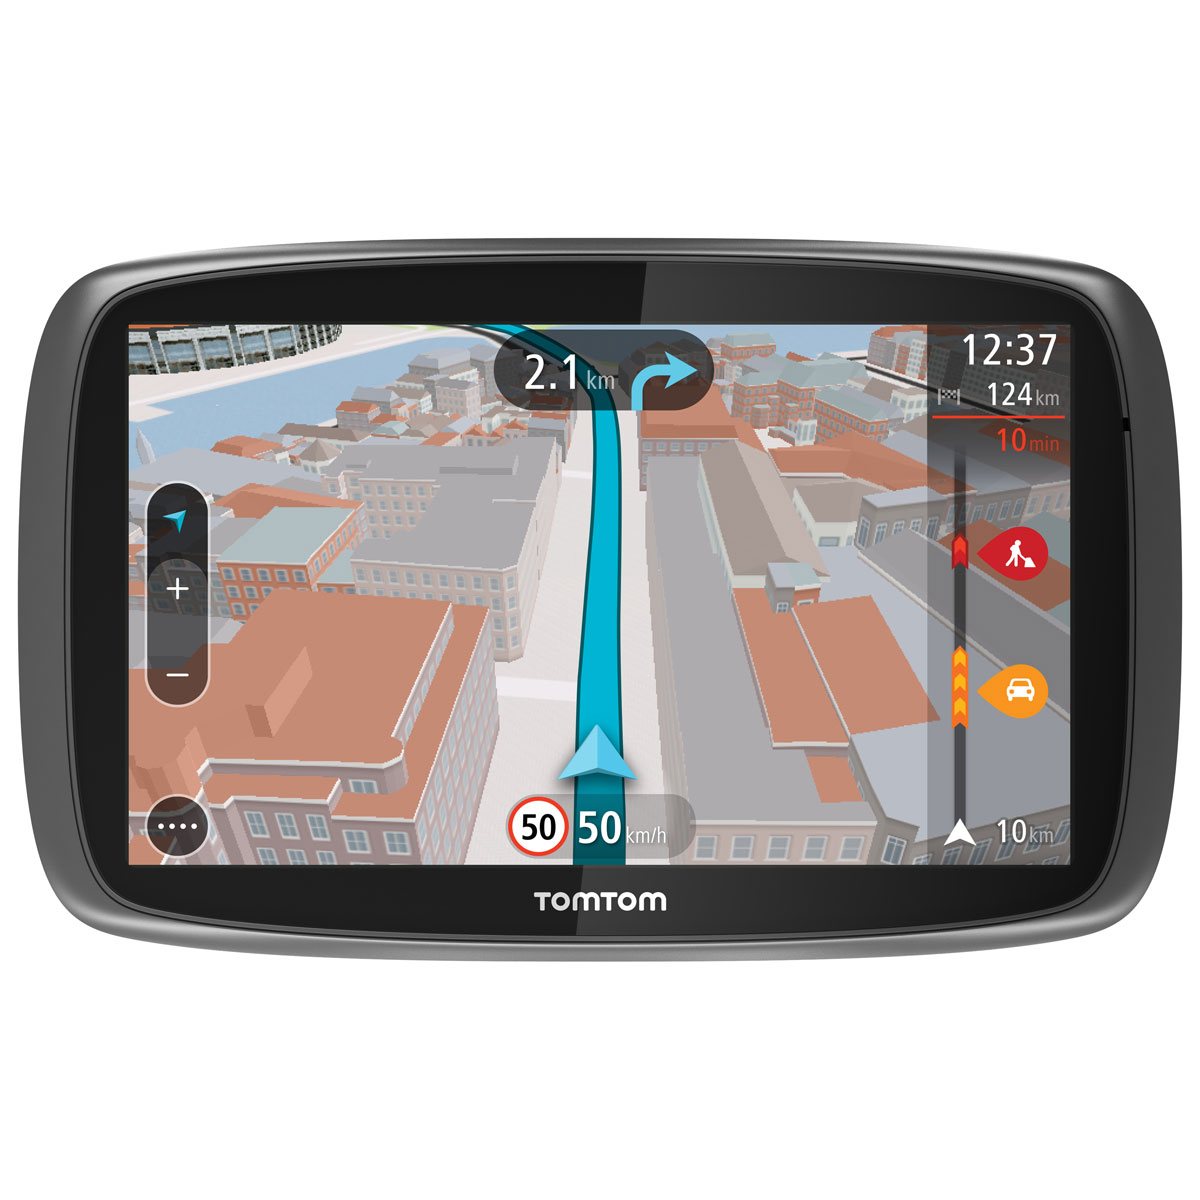 tomtom go 600 gps tomtom sur. Black Bedroom Furniture Sets. Home Design Ideas